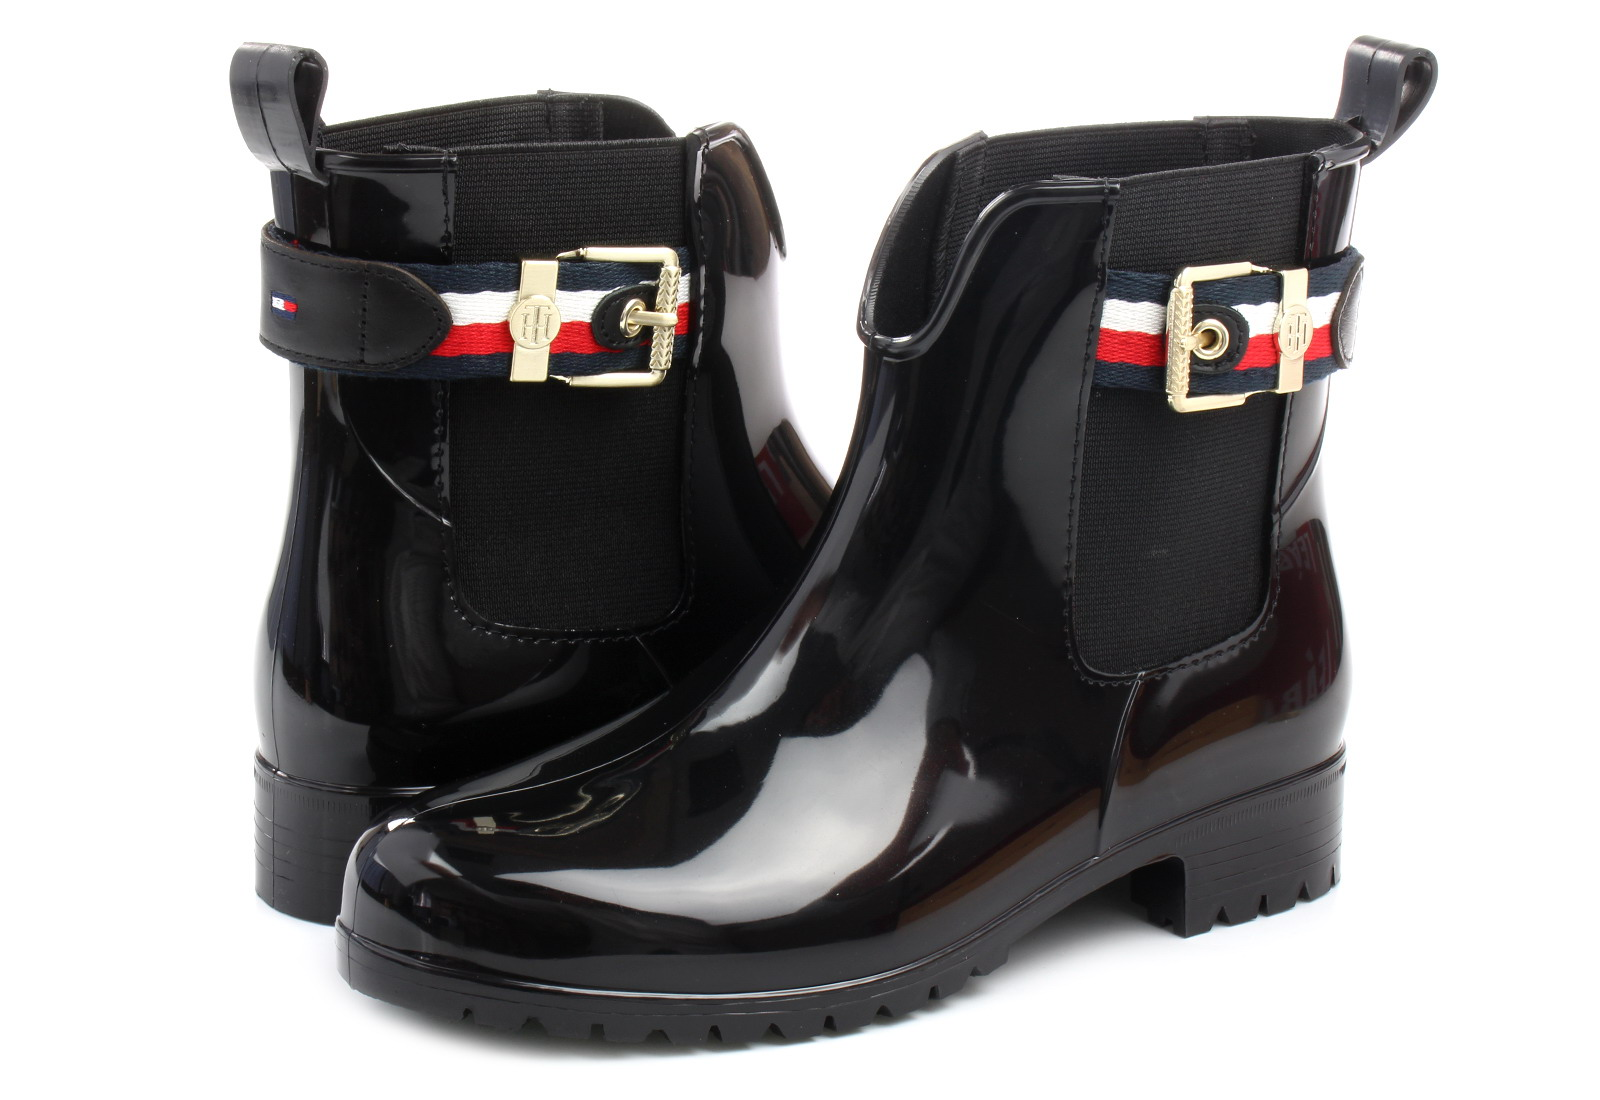 Tommy Hilfiger Csizma - Oxley 13r1 - 18F-3329-990 - Office Shoes ... bece2bd49e